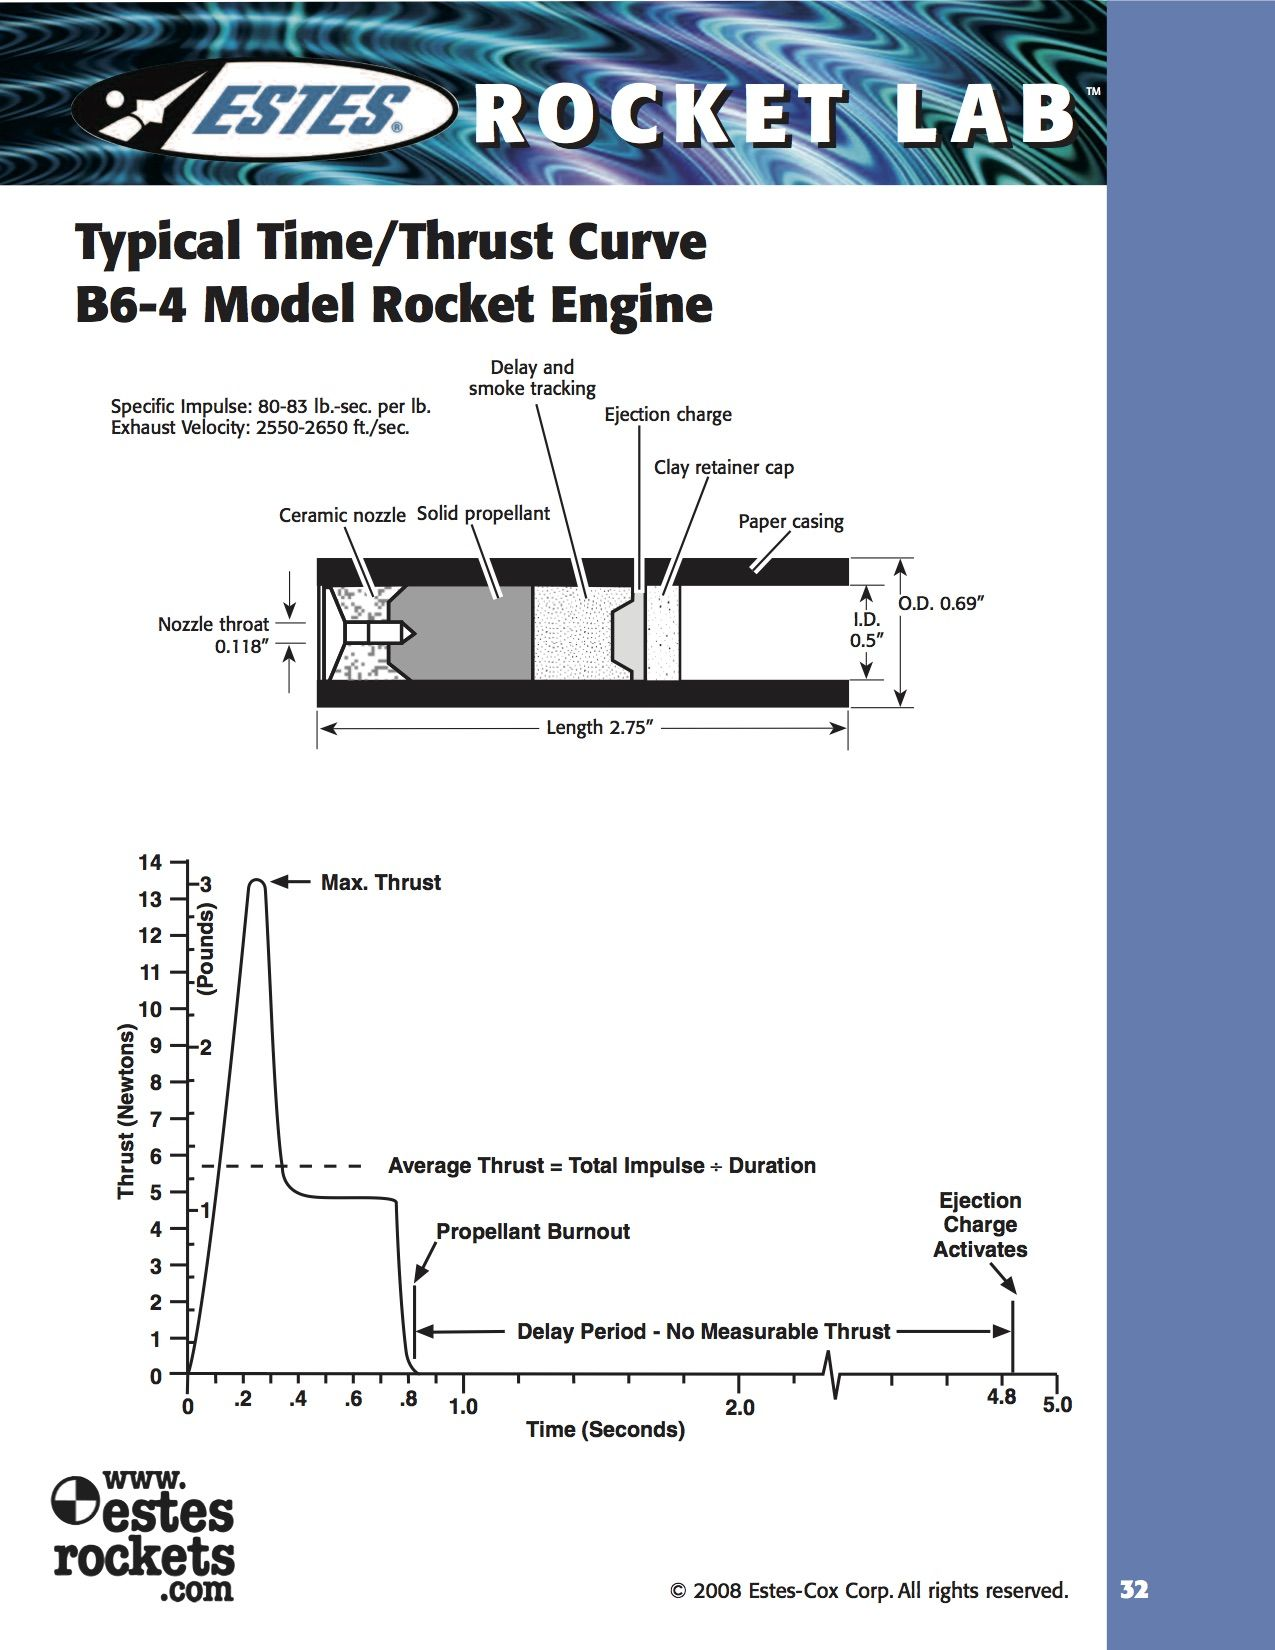 hight resolution of typical time thrust curve for a b6 4 model rocket engine specific impulse 80 83 lb sec per lb exhaust velocity 2550 2650 ft sec